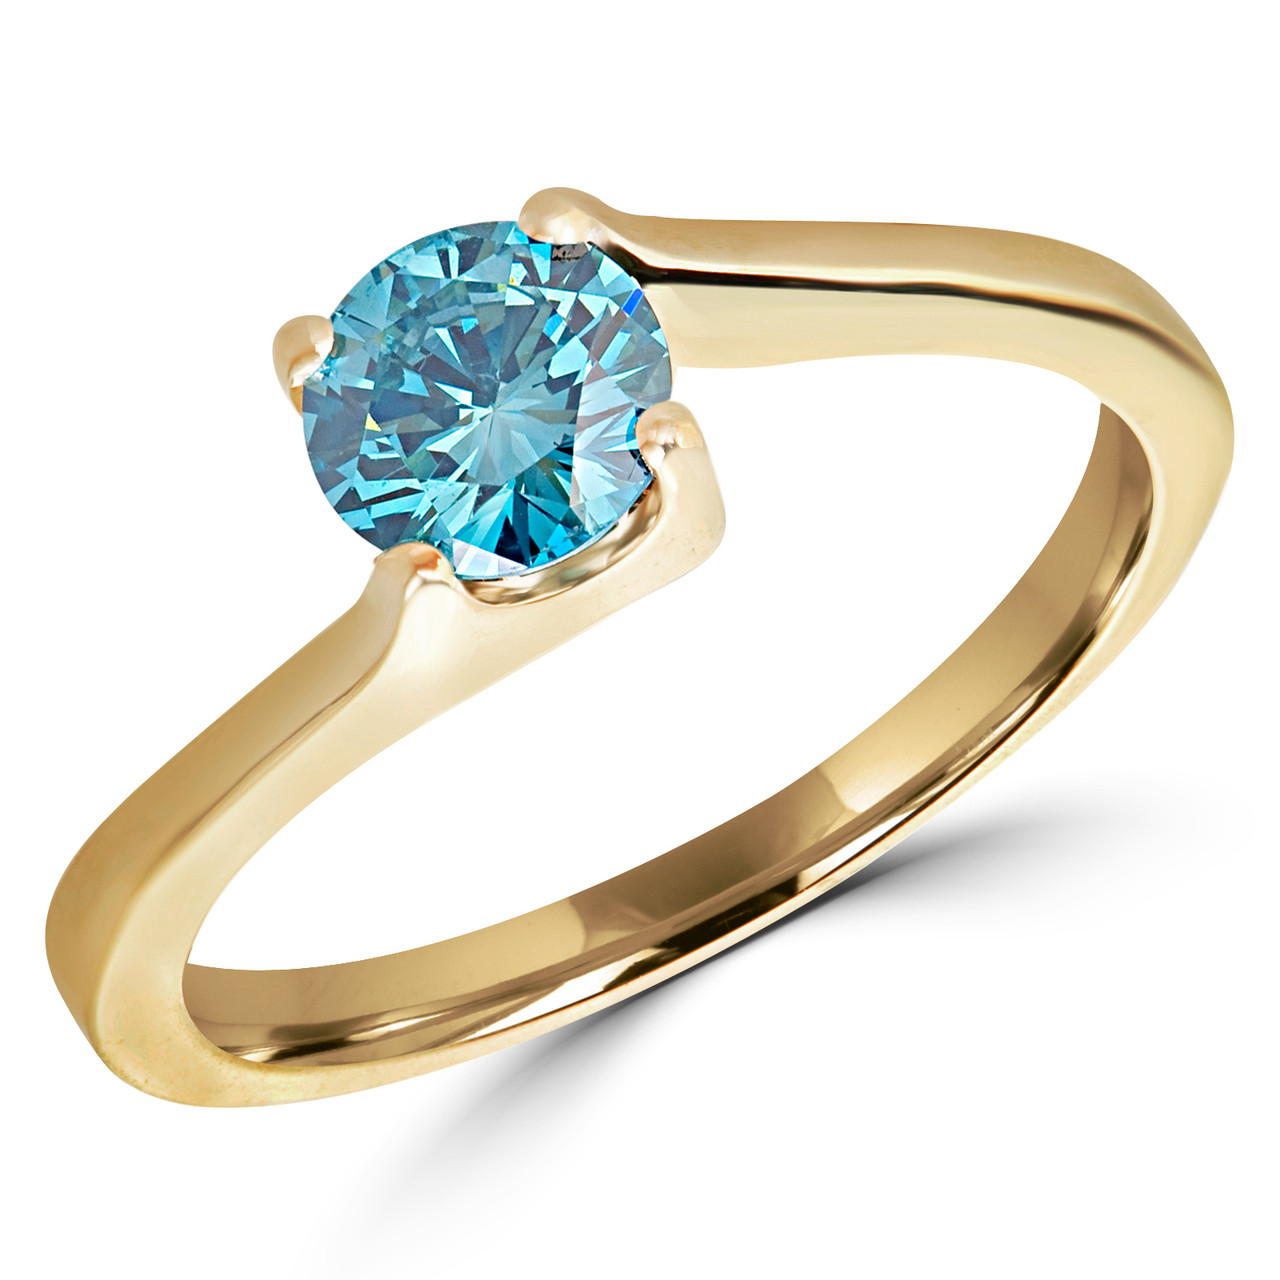 d7347f71a Round Cut Ocean Blue Diamond Solitaire 4-Prong Engagement Ring in Yellow  Gold - #. Tap to expand